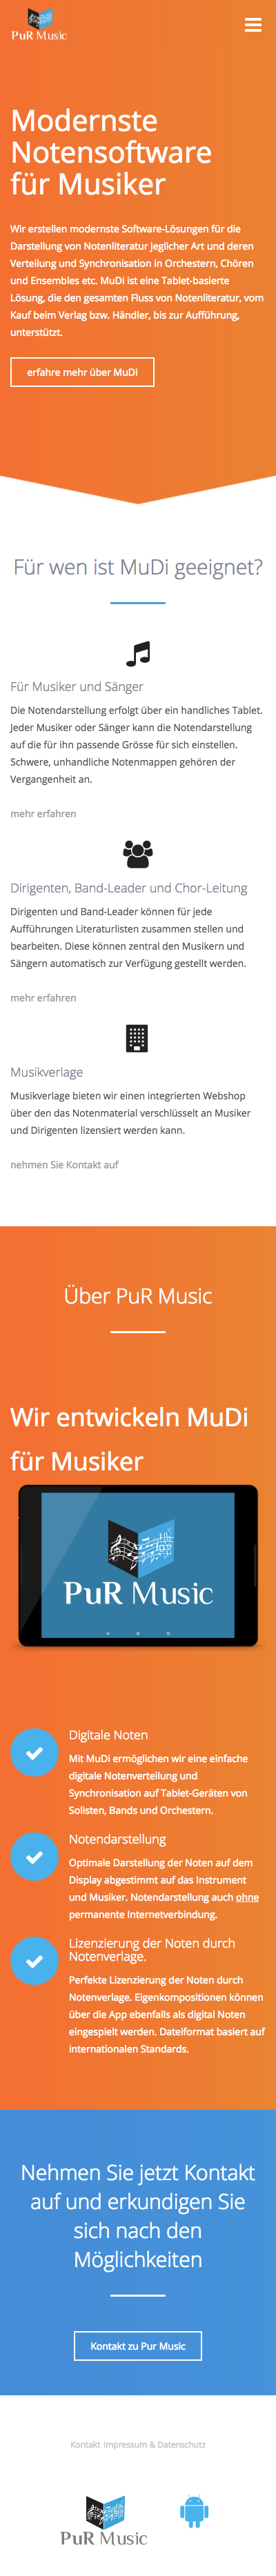 PuR Music mobile Website